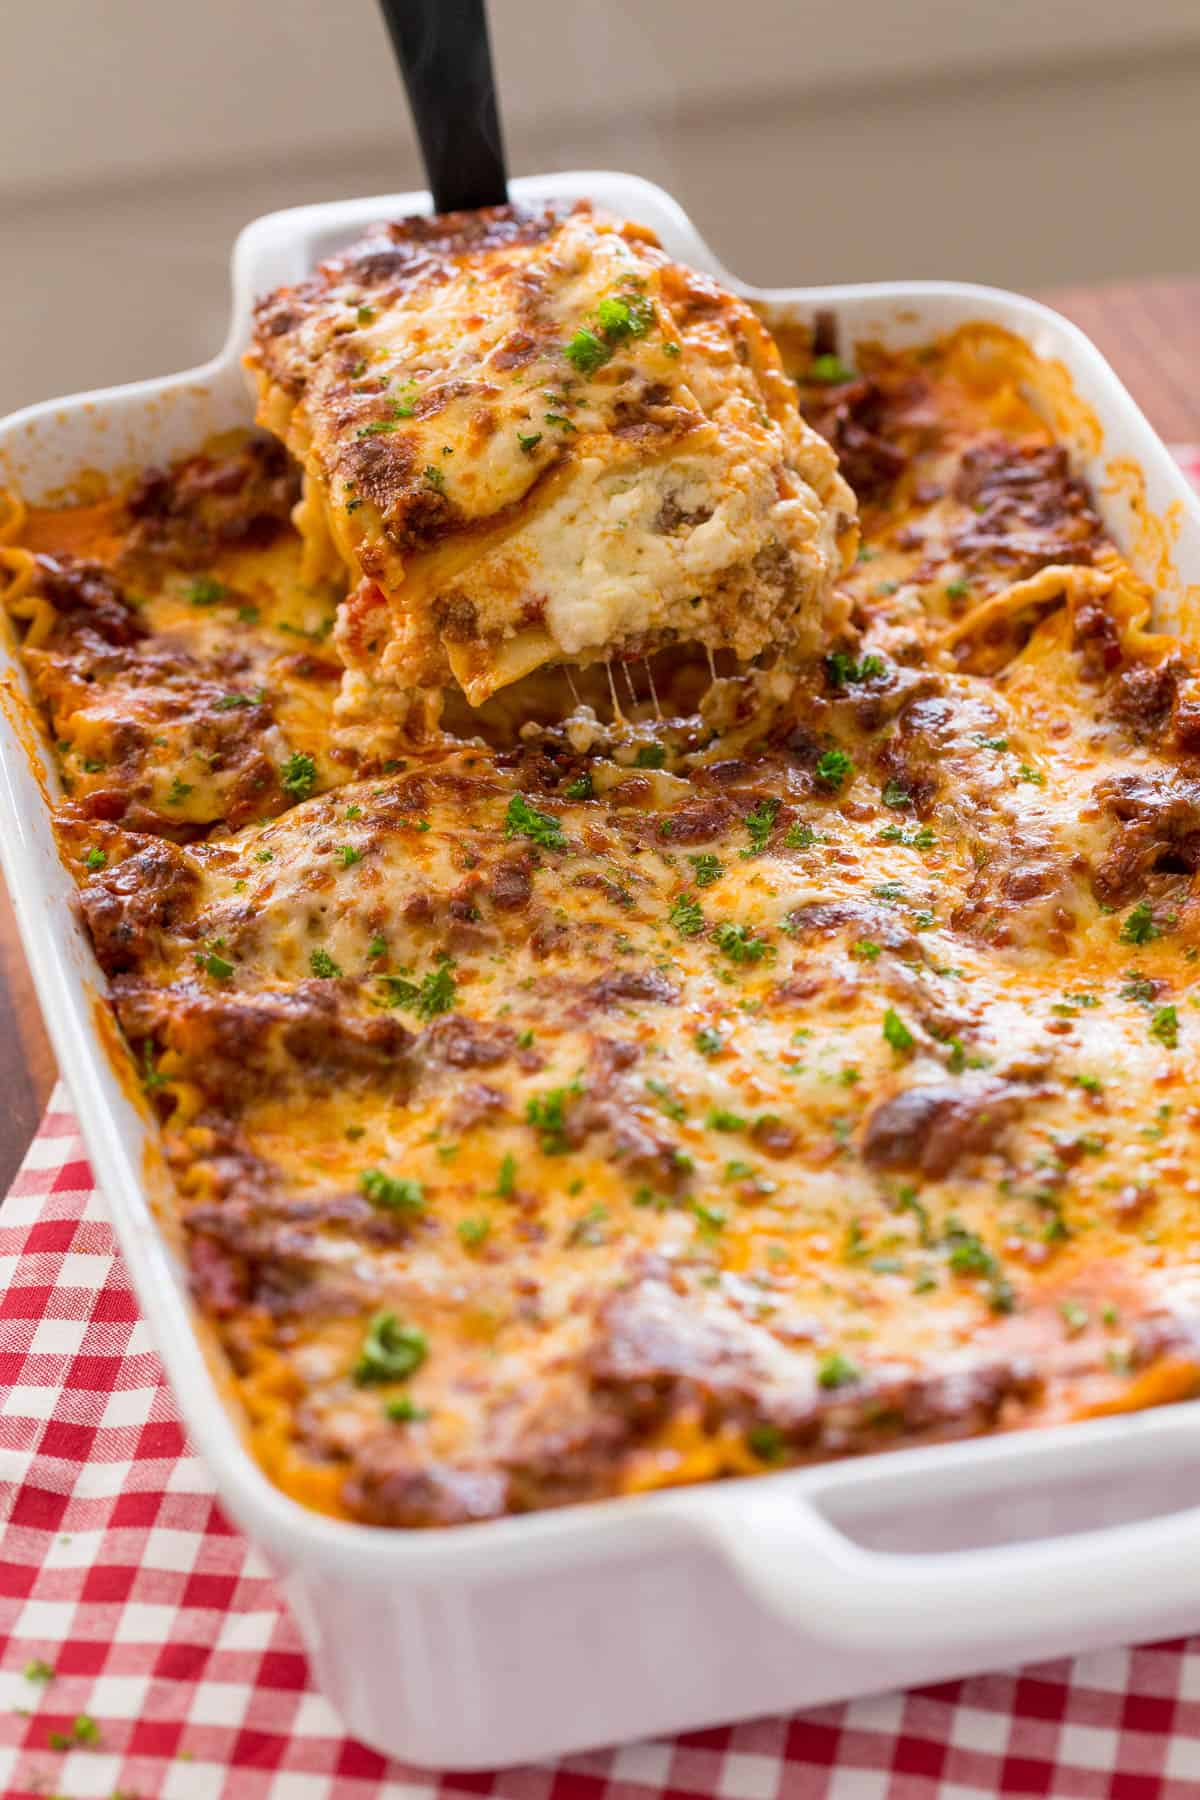 Lasagna Recipe (VIDEO) - NatashasKitchen